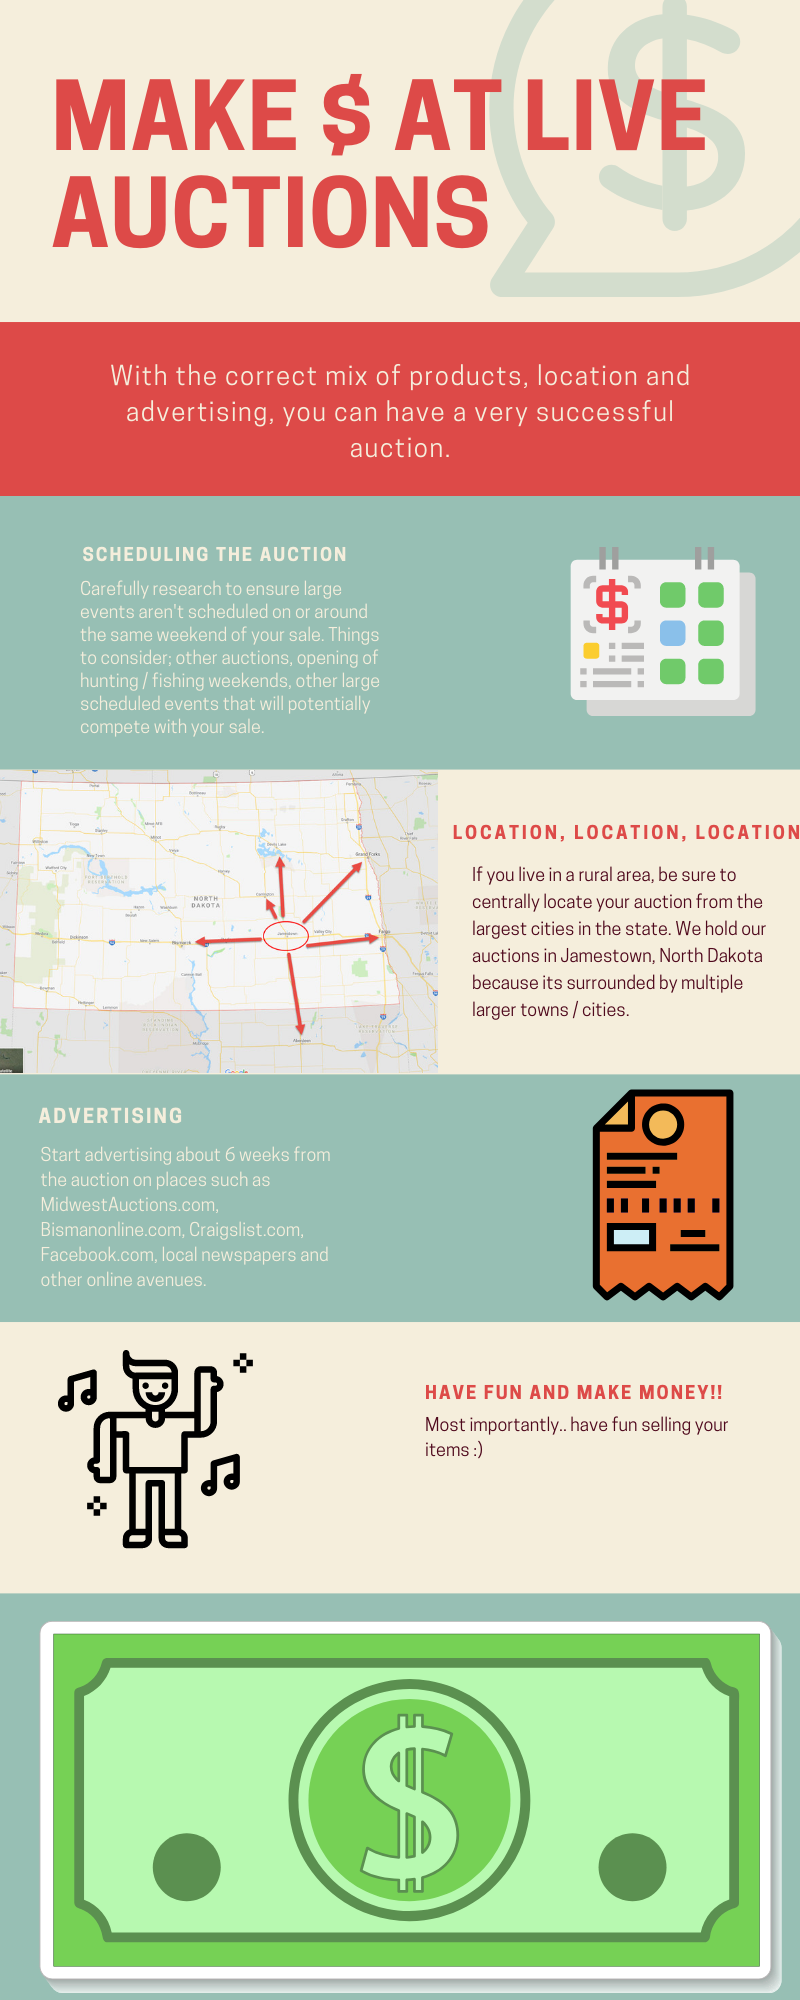 This infographic quickly explains how to properly set up and advertise a live auction to flip your stagnant inventory into cold cash.